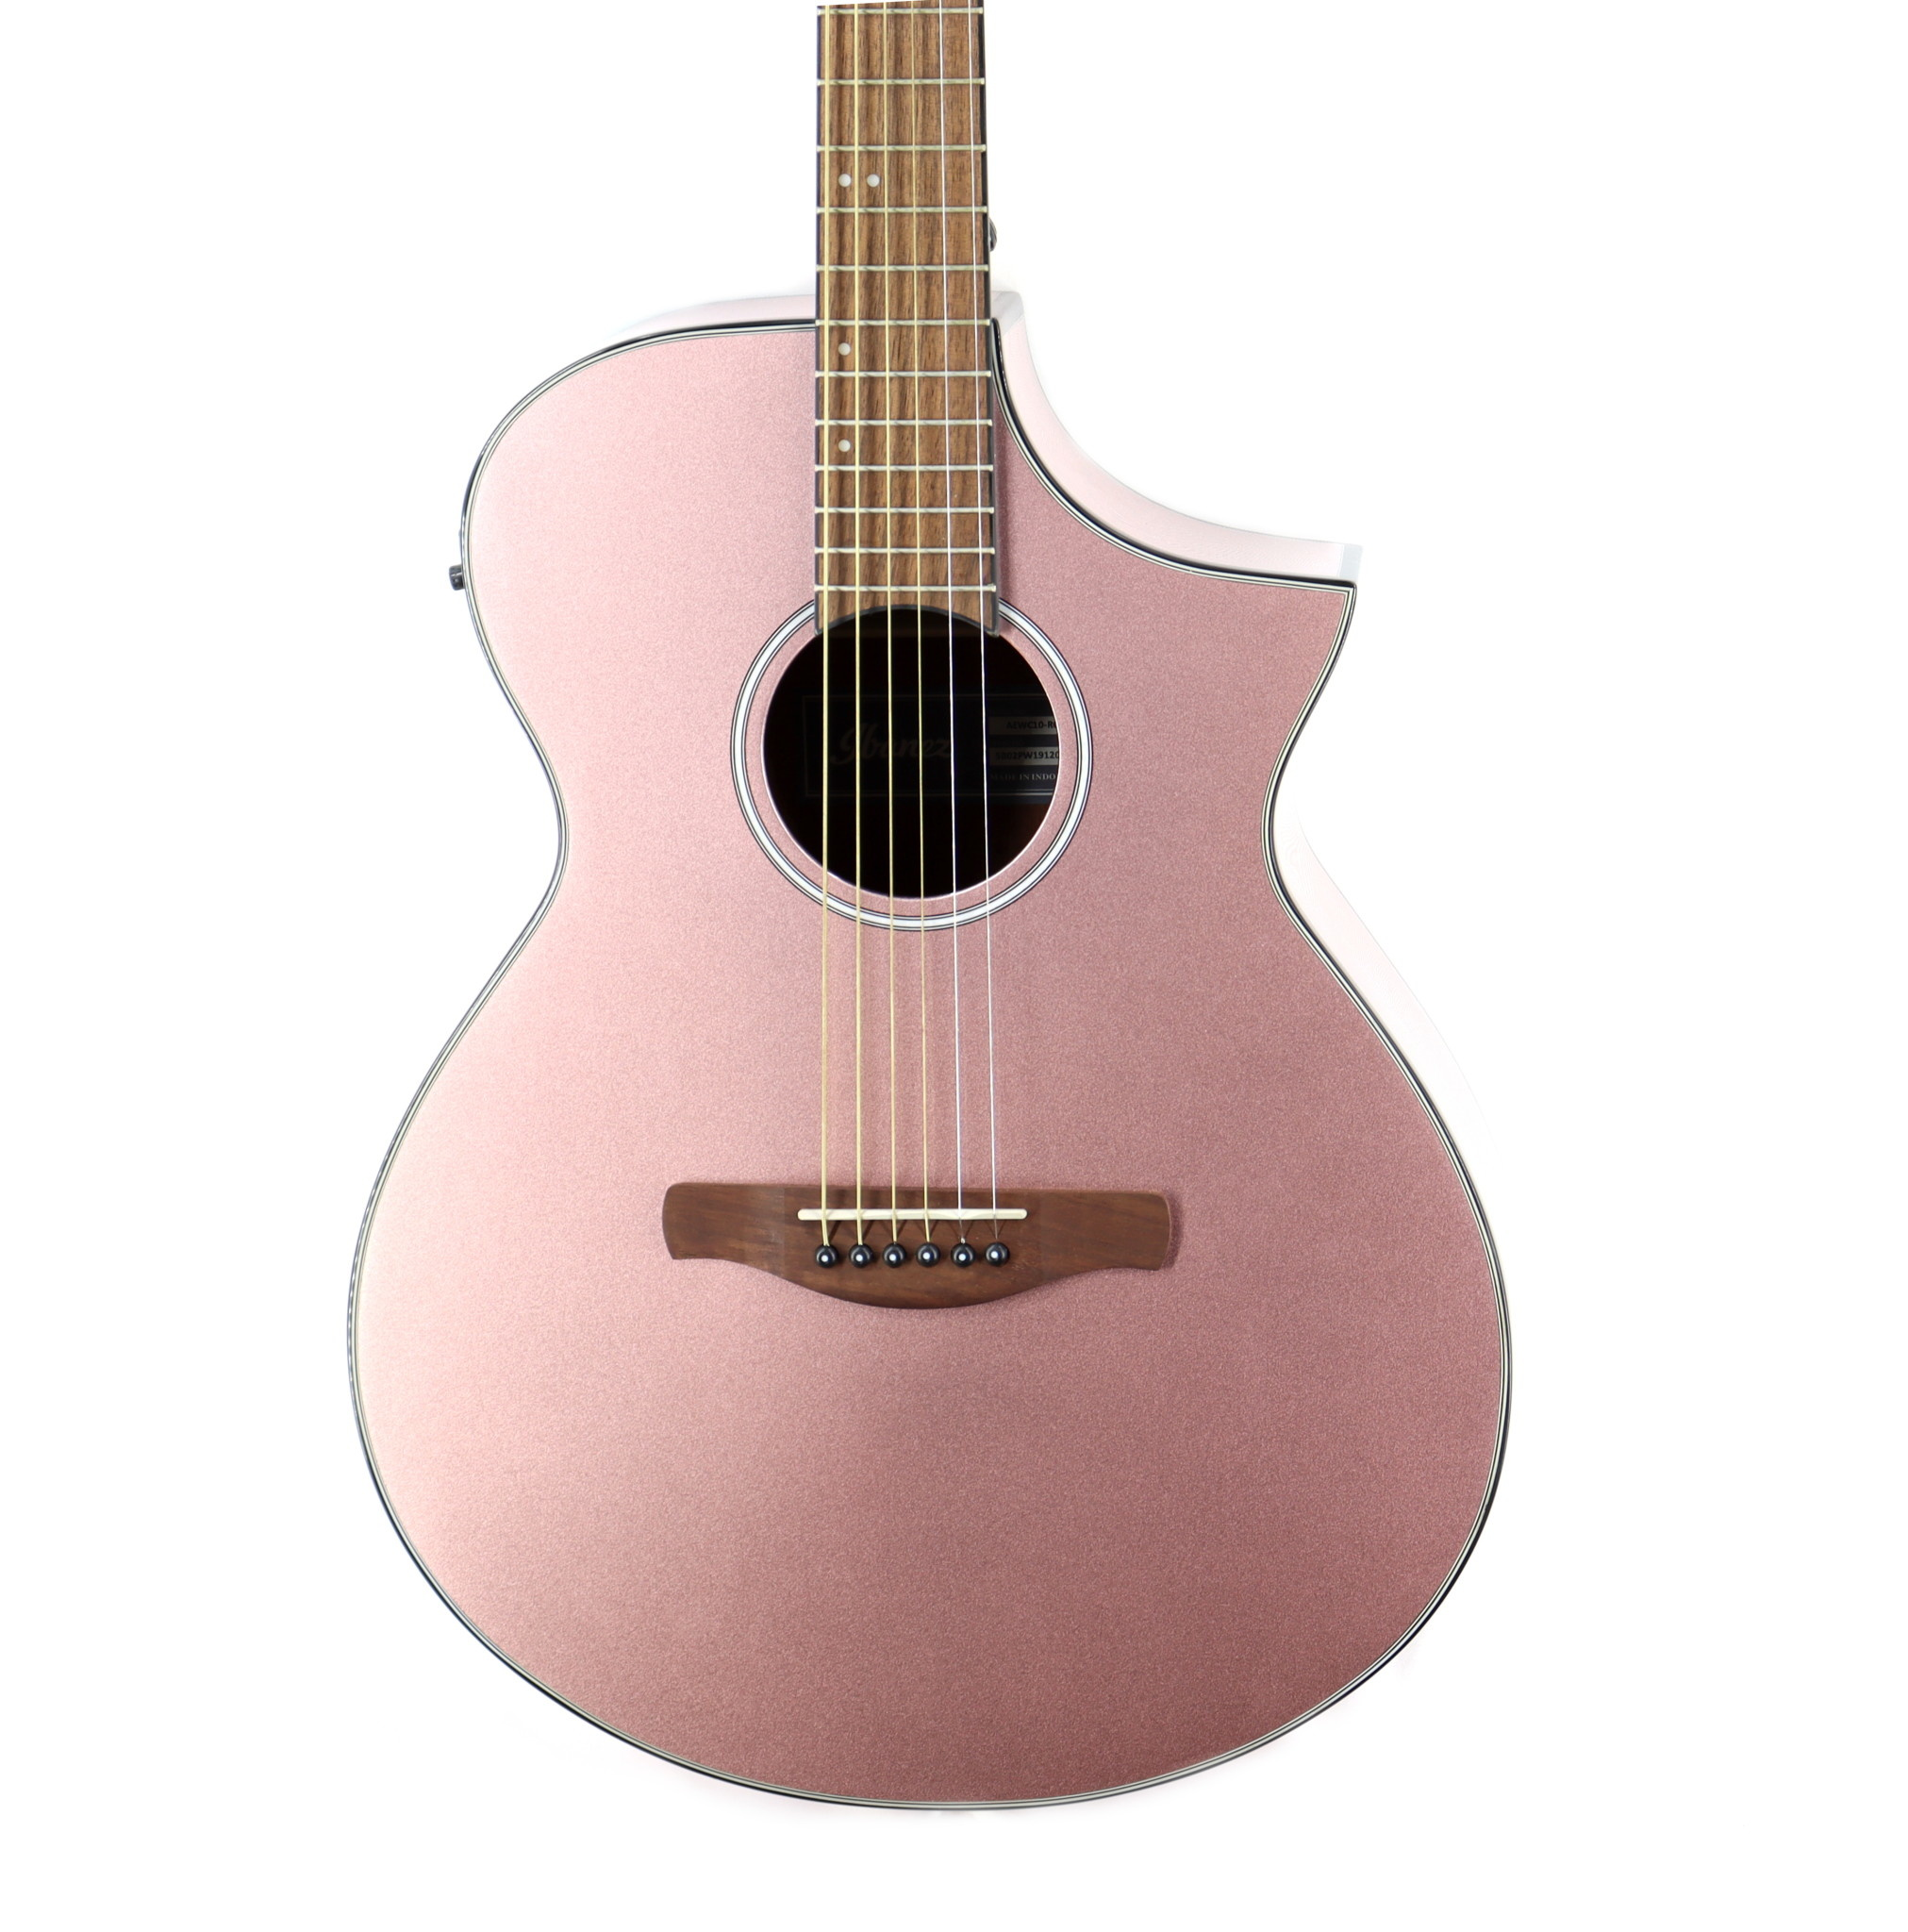 Ibanez Ibanez AEWC10RGM  Acoustic Guitar in Rose Gold High Gloss